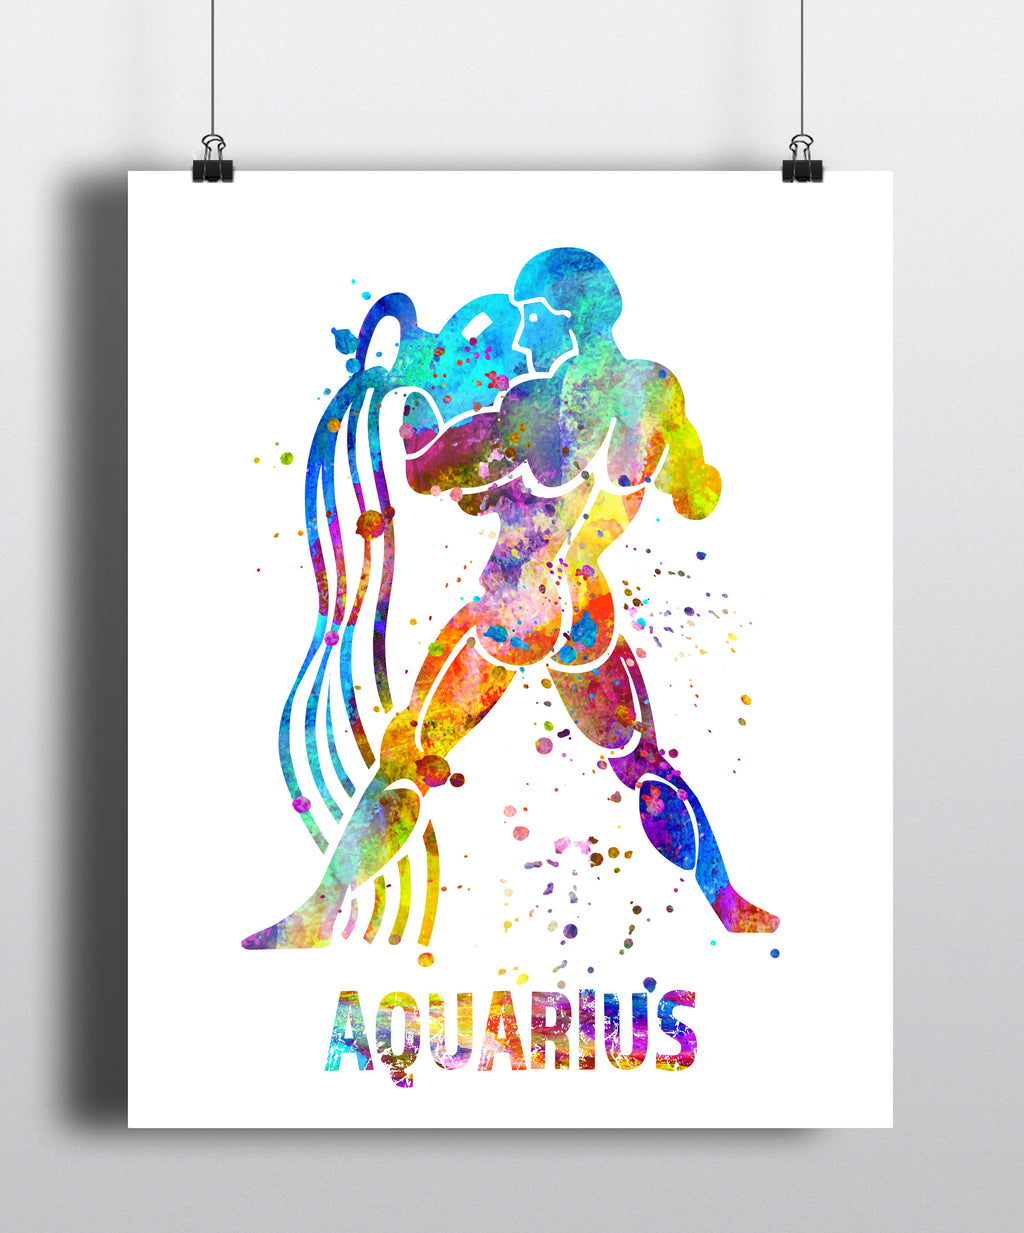 Aquarius Astrology Art Print - Unframed - Zuzi's